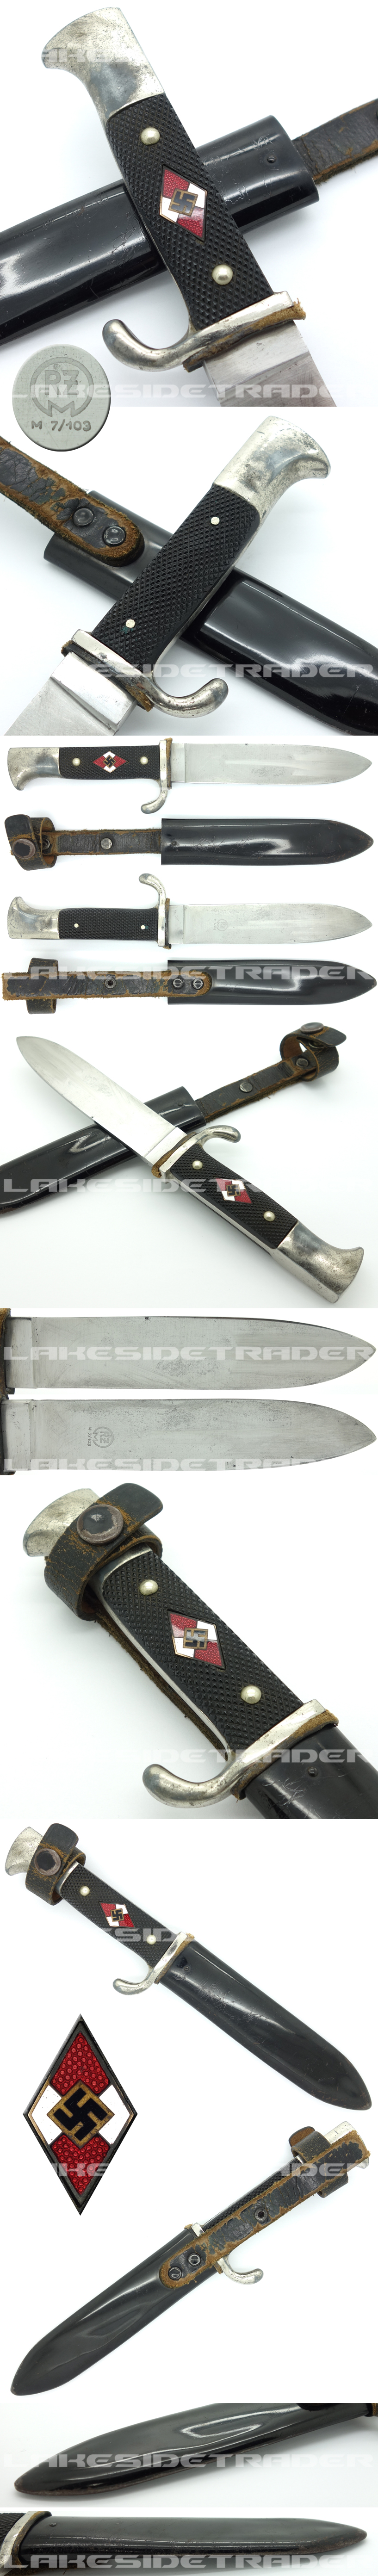 Hitler Youth Knife by RZM M7/103